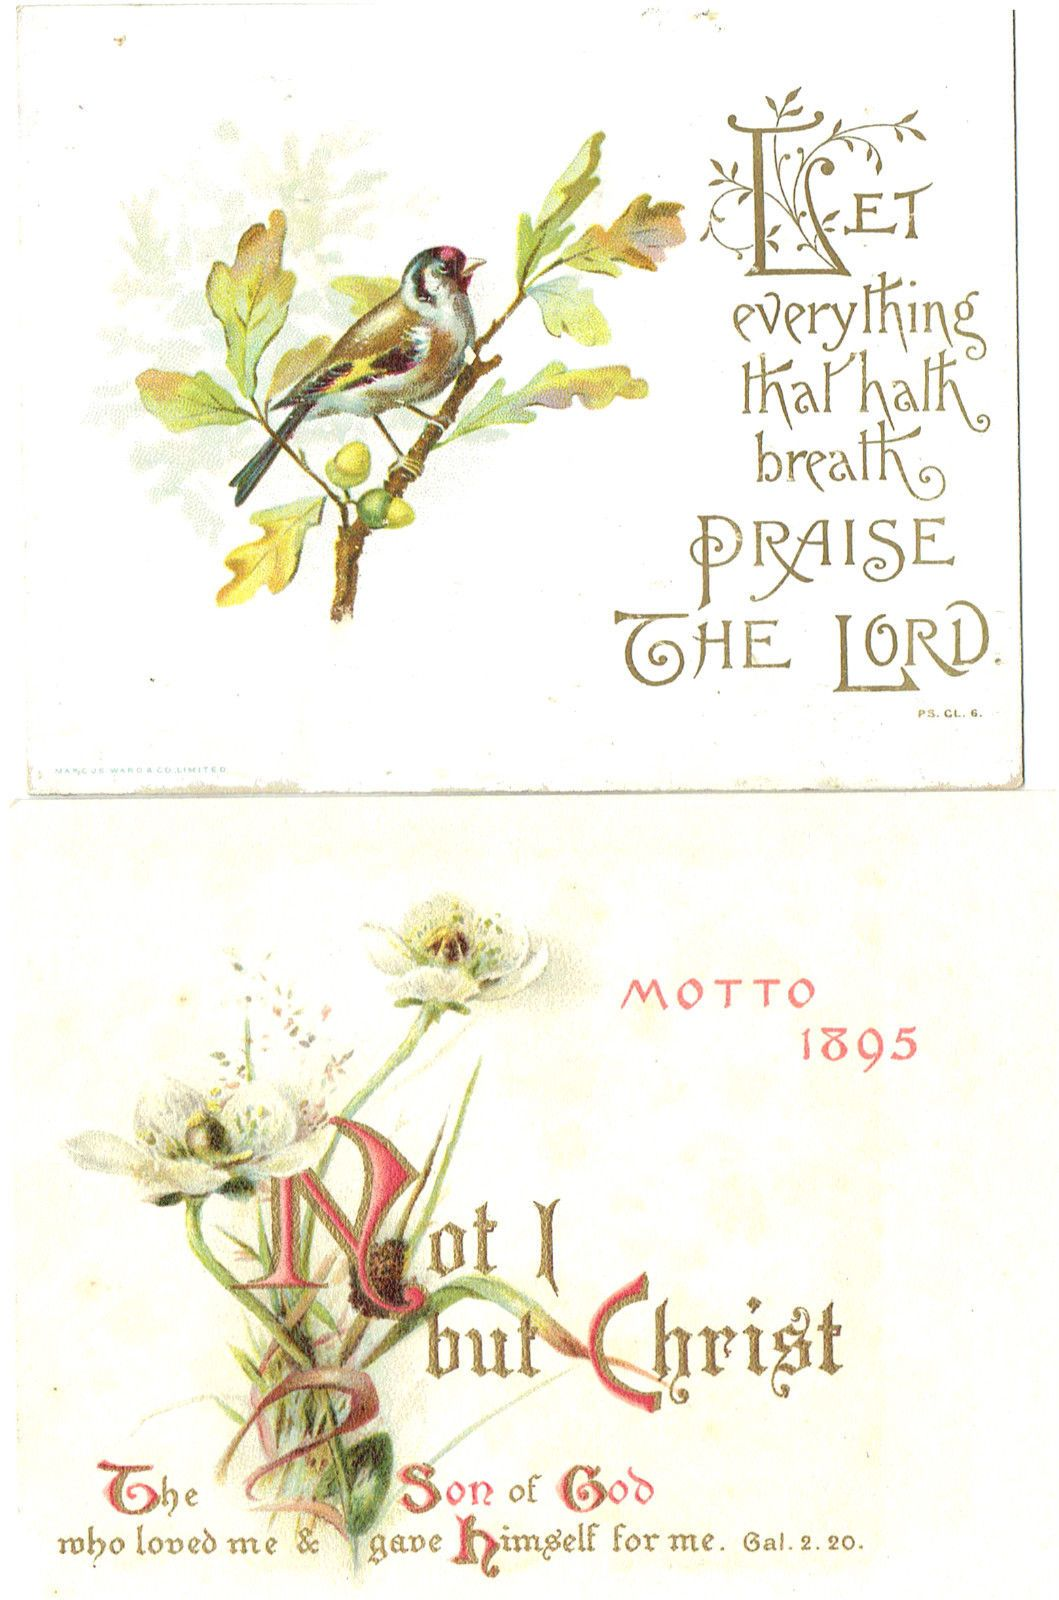 2 X Victorian Christmas Greetings Cards Religious Text 1 X Motto